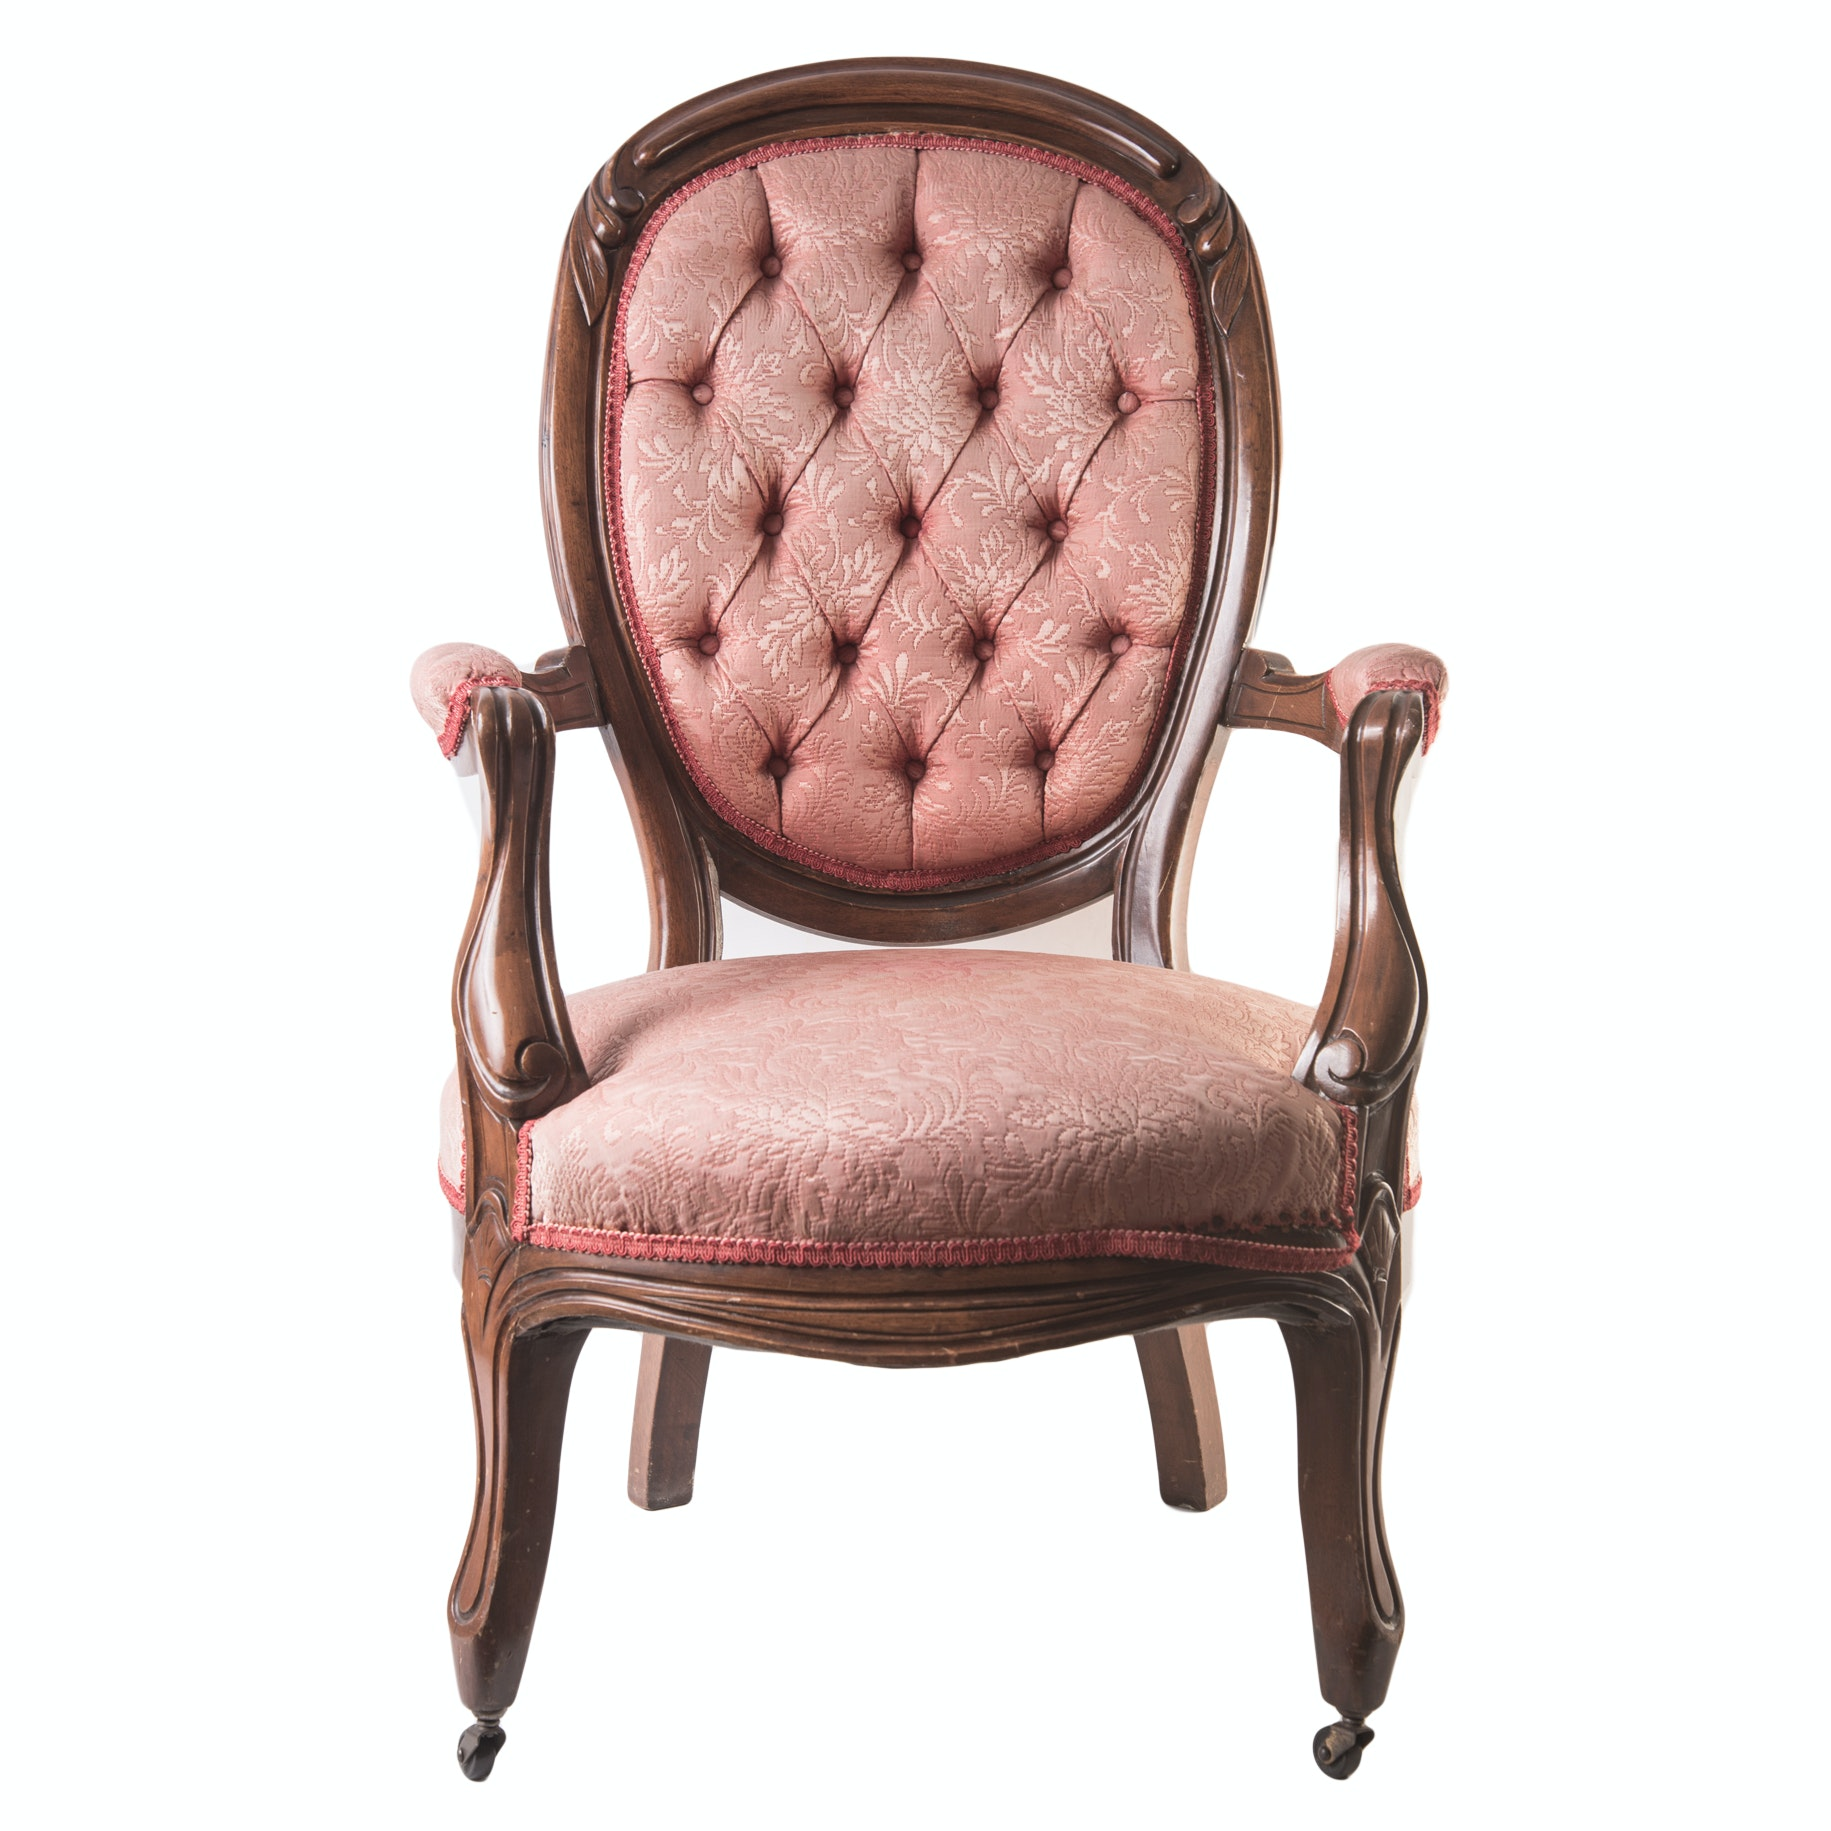 Vintage Victorian Style Parlor Chair